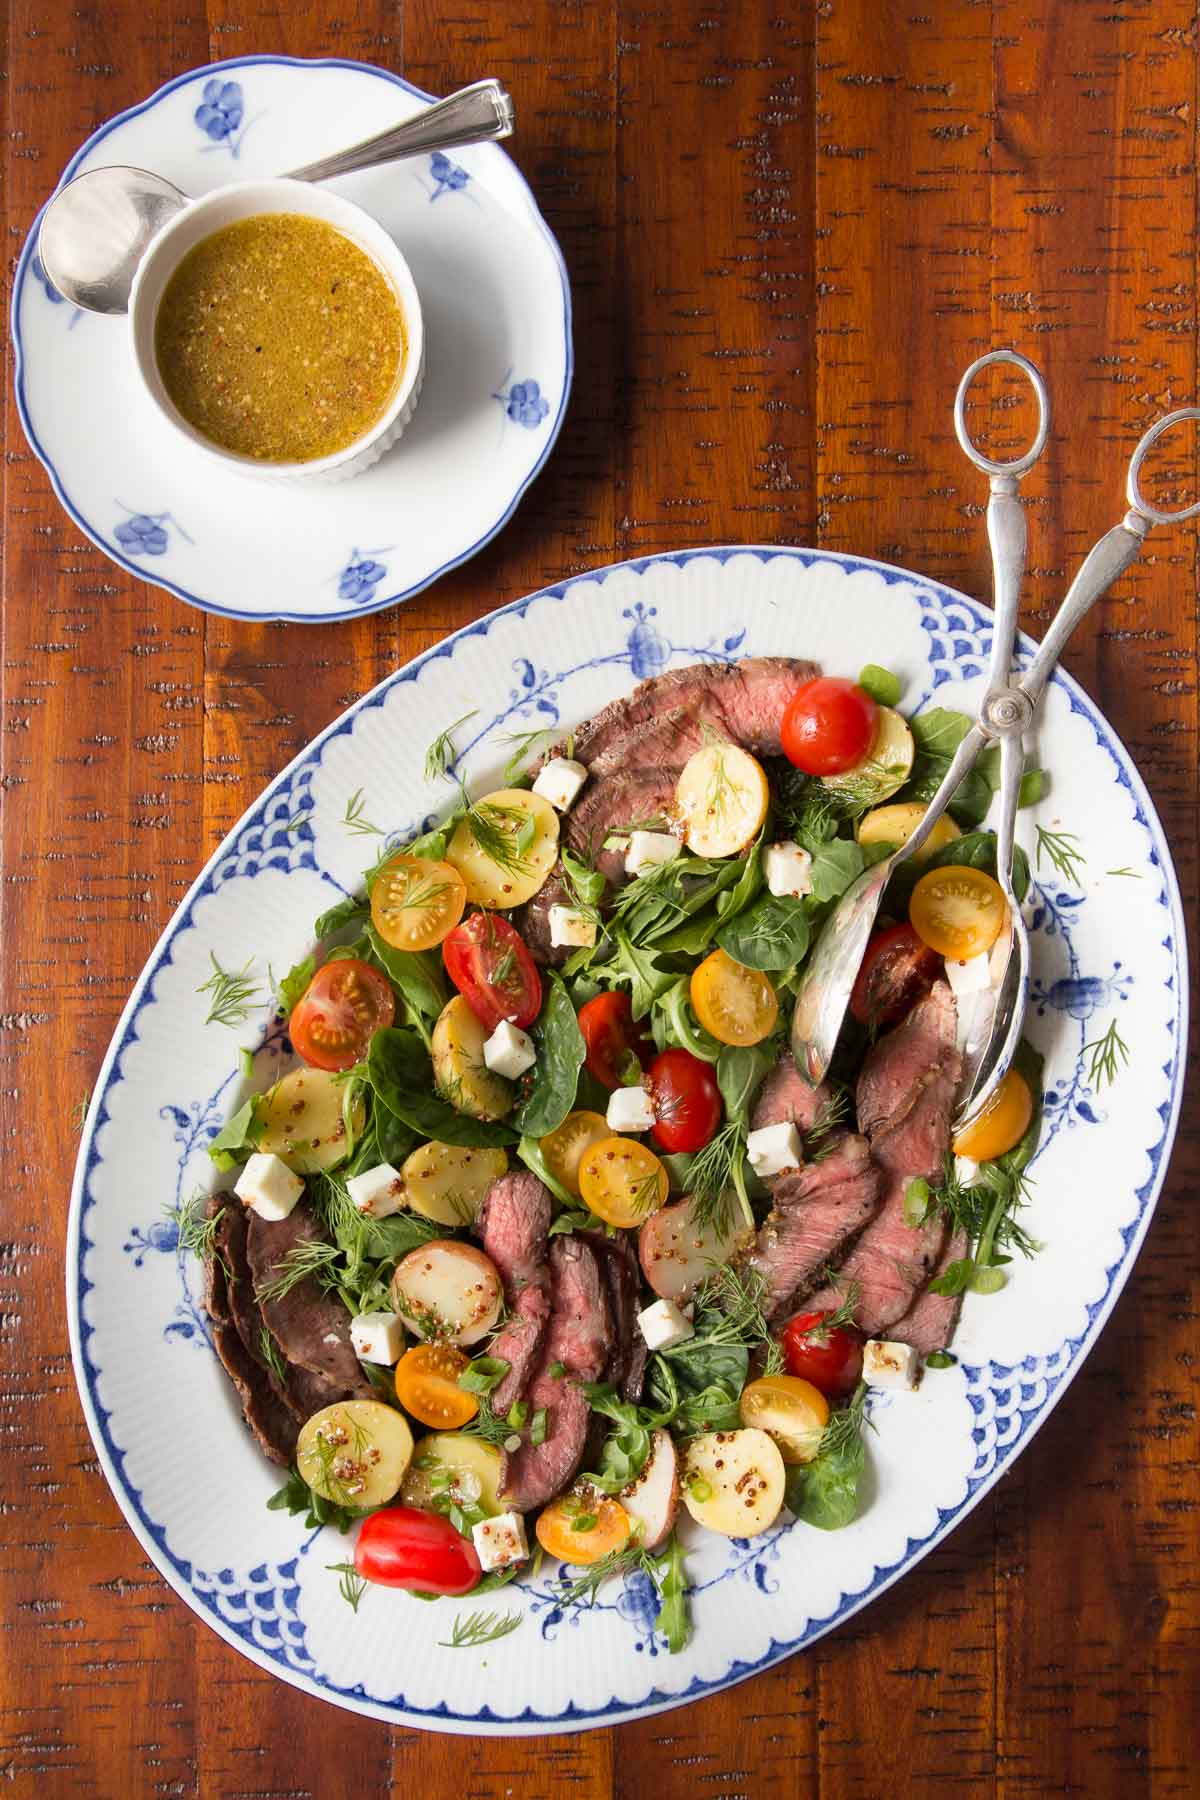 Overhead photo of a blue and white patterned platter filled with a Steak and Potato Arugula Salad on a distressed wood table. A cup of salad dressing is next to the platter.